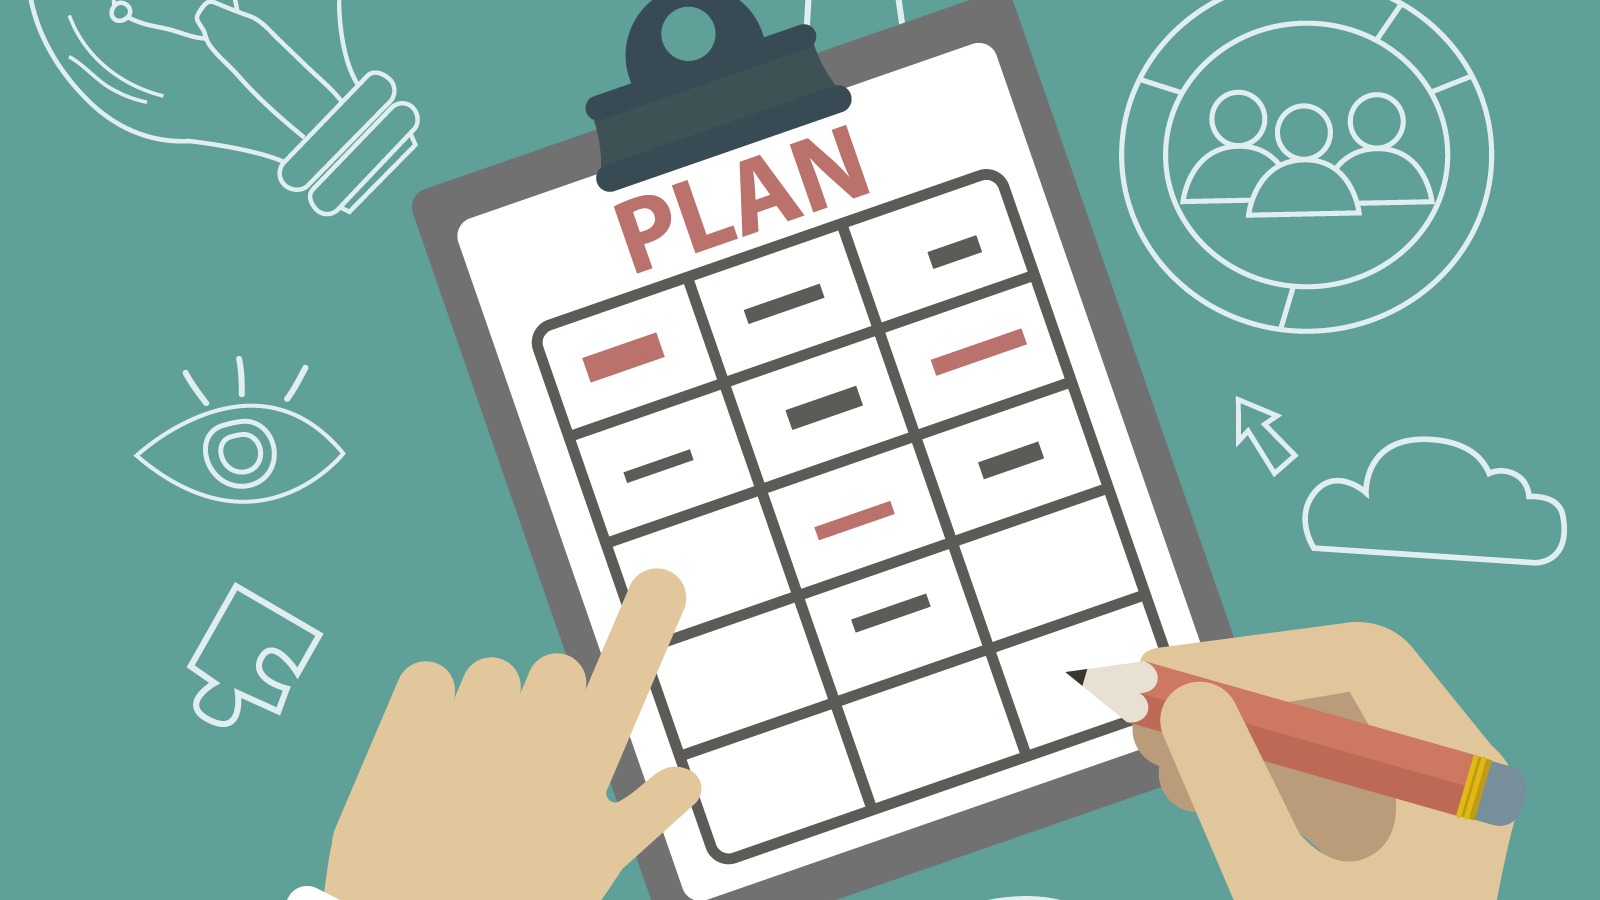 event planning business planning- Designed by Freepik